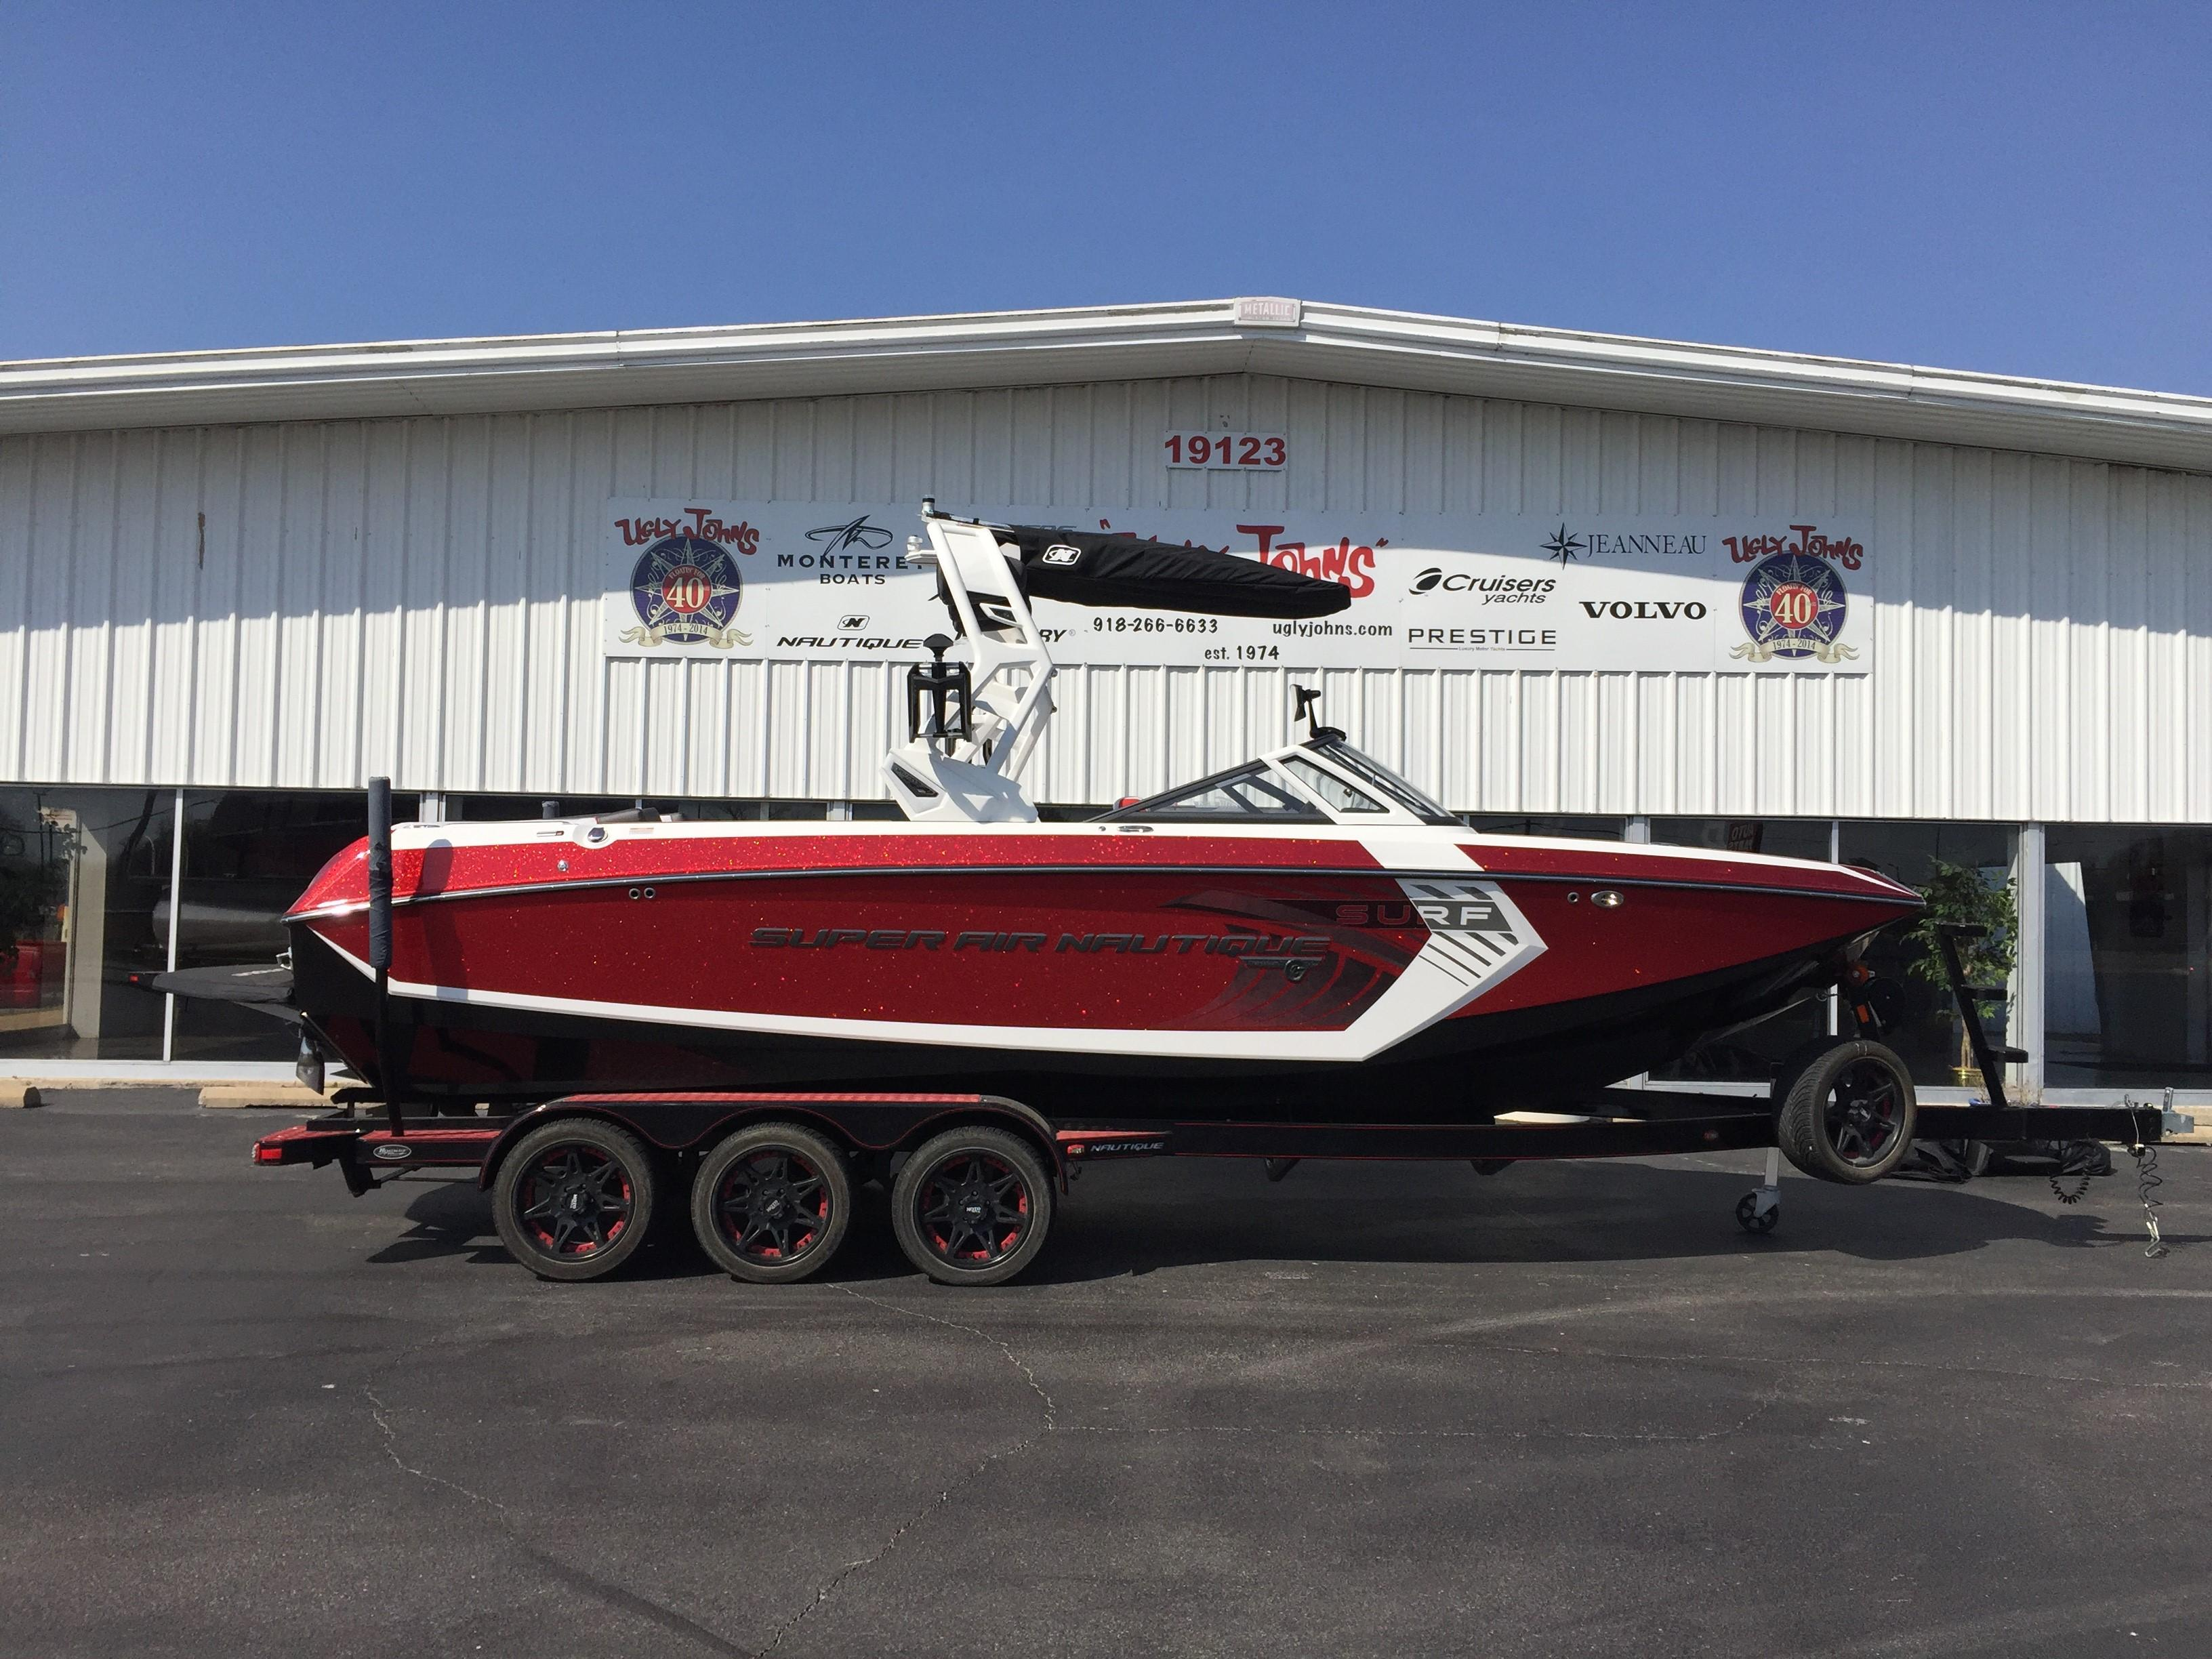 2018 Nautique Super Air Nautique G25 Eufaula, Oklahoma - Ugly John's